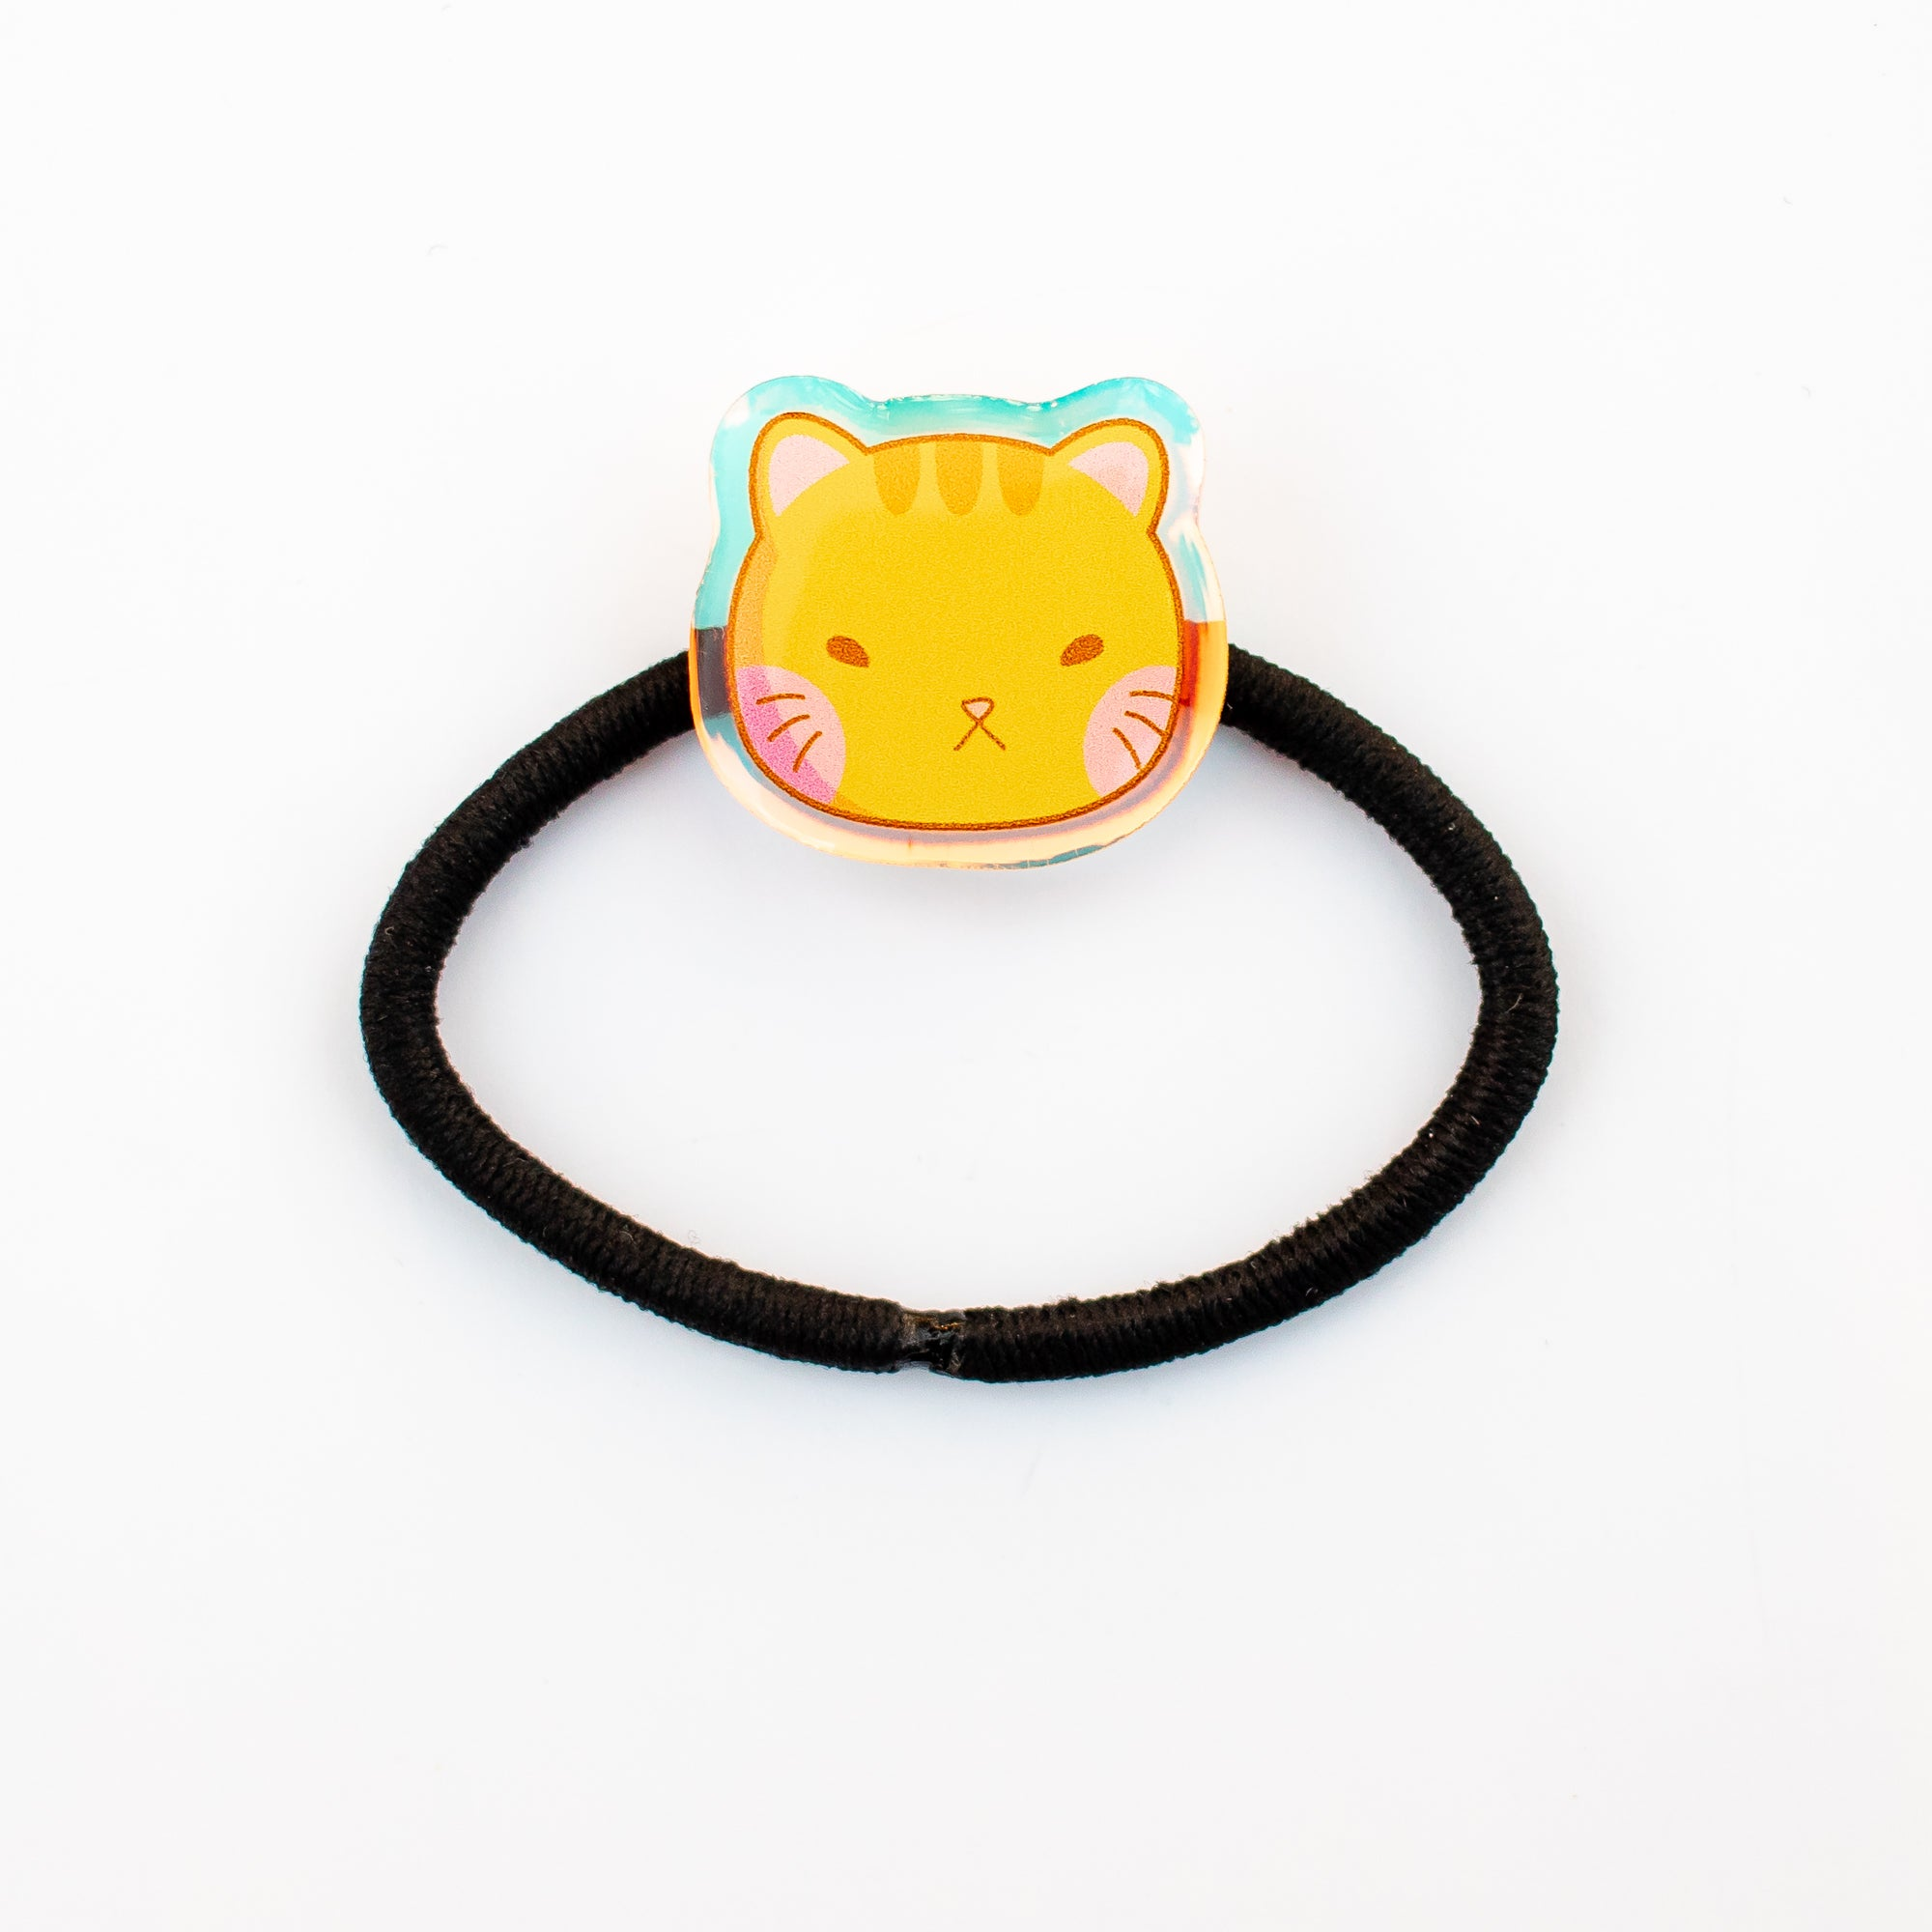 [SECONDS SALE] Sonia Hair Tie